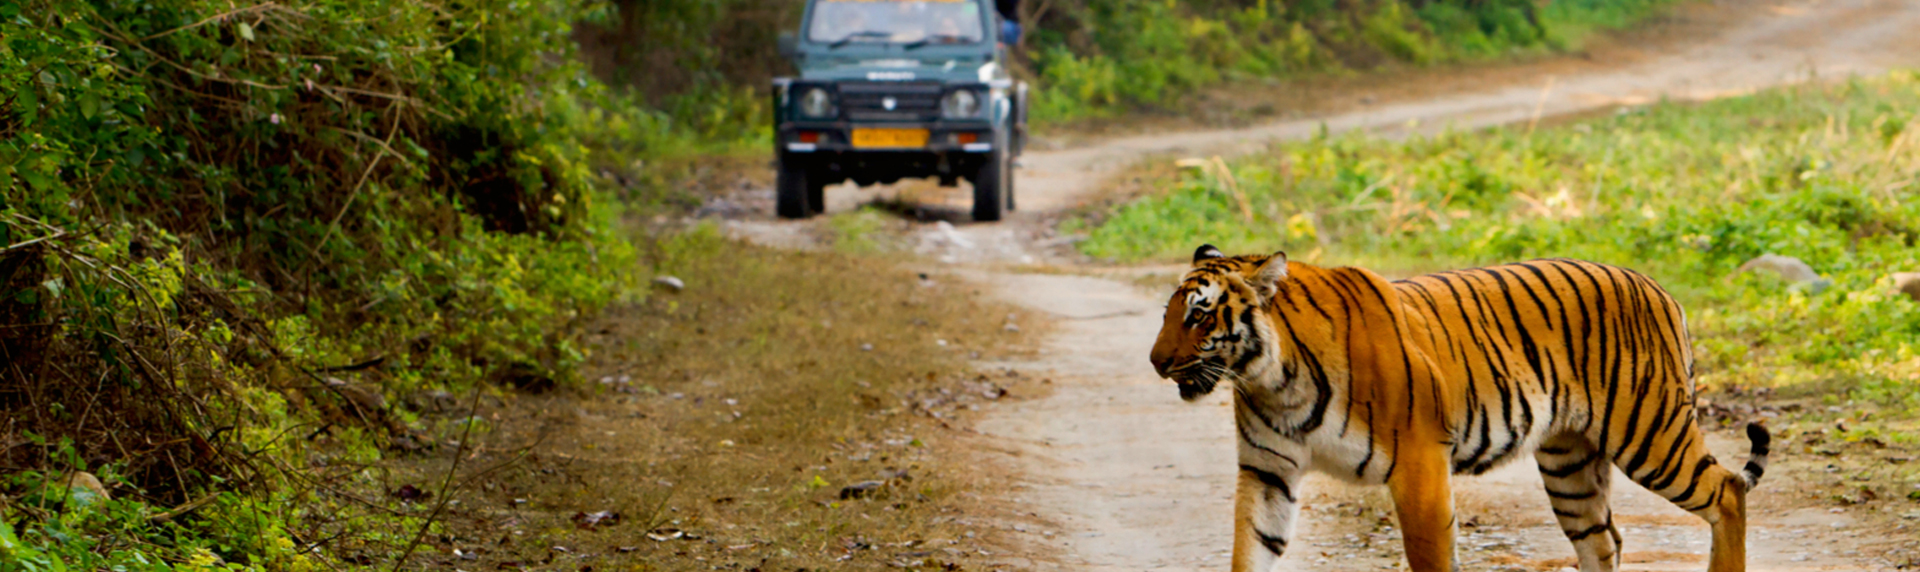 Tiger in Jim corbett national park Uttarakhand with people doing jeep safari and swatching the tiger